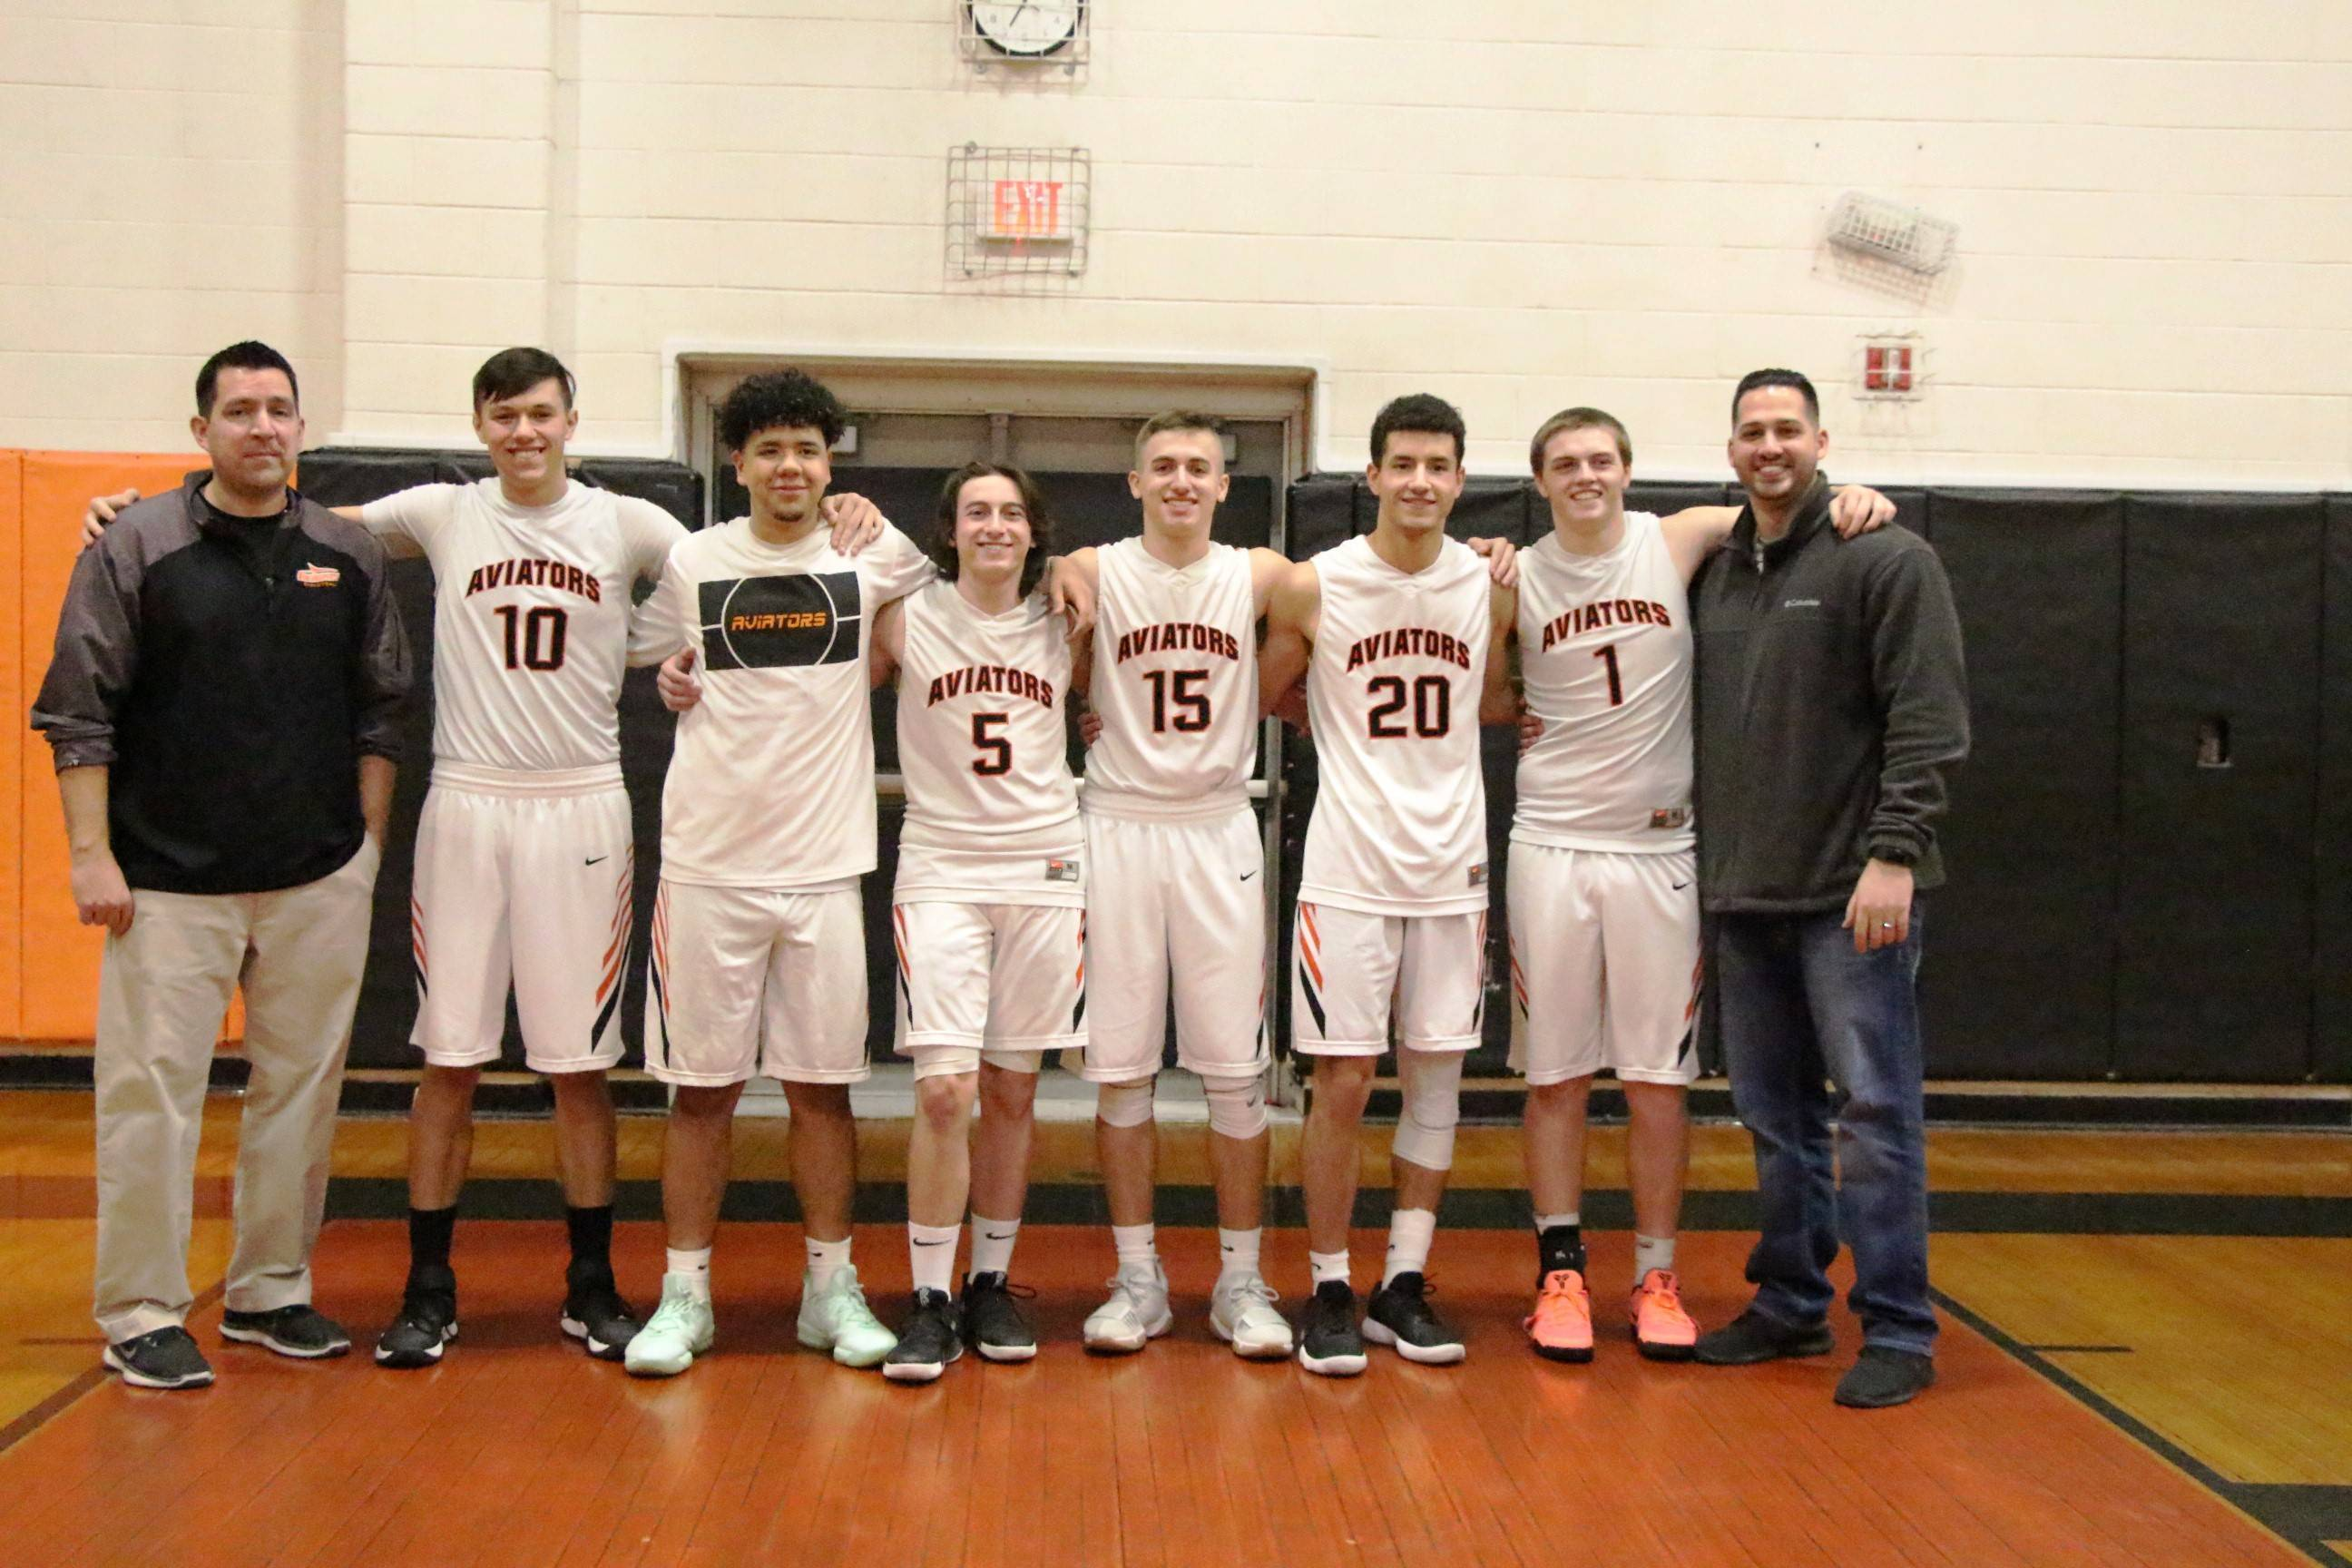 e7c77d220357cd752a2f_EDIT_seniors_and_coach_before_the_game.jpg